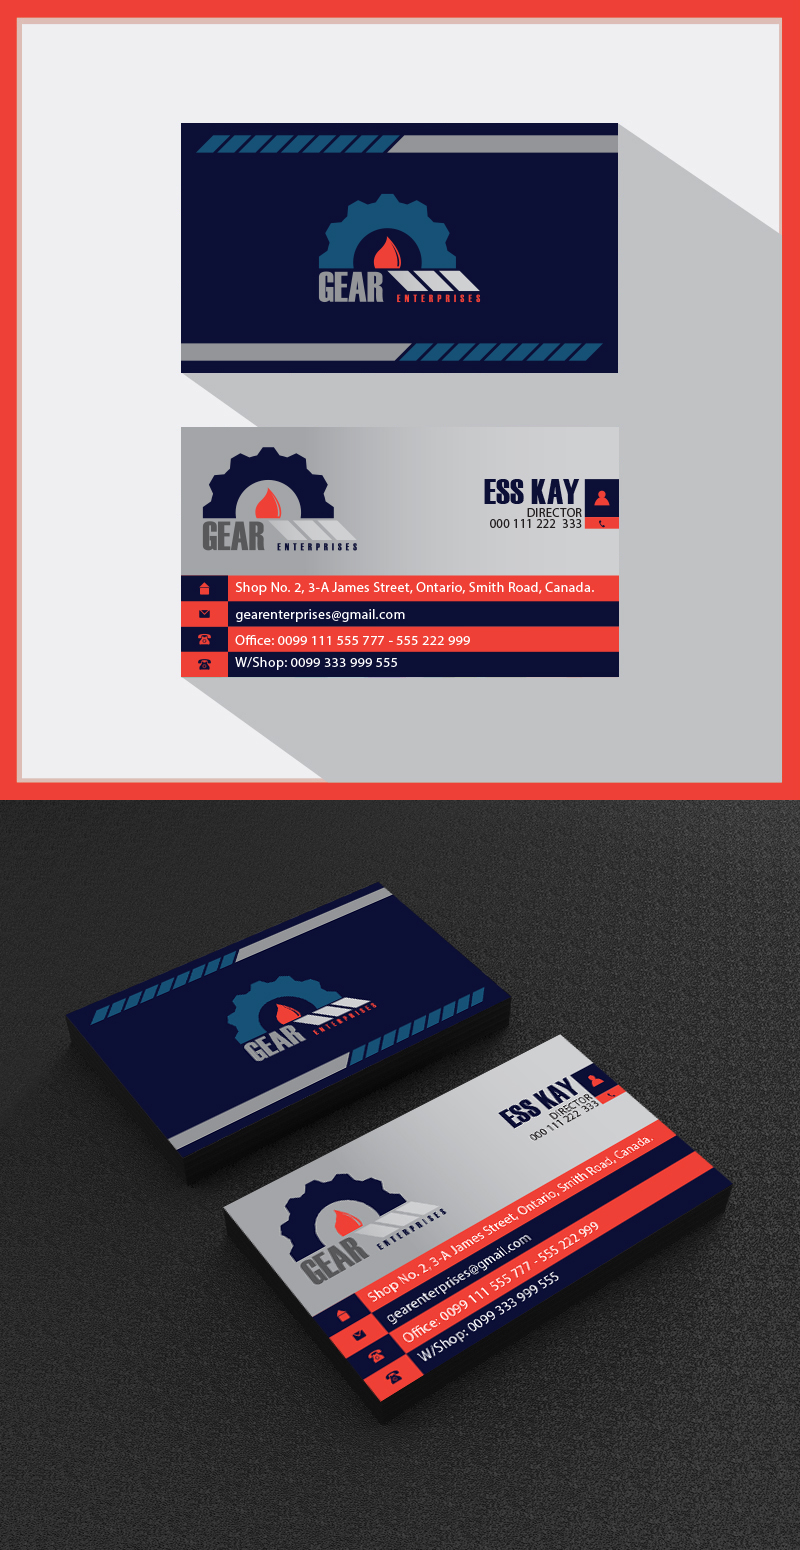 Business Card Template Designs Collection A Graphic World - Business card templates designs